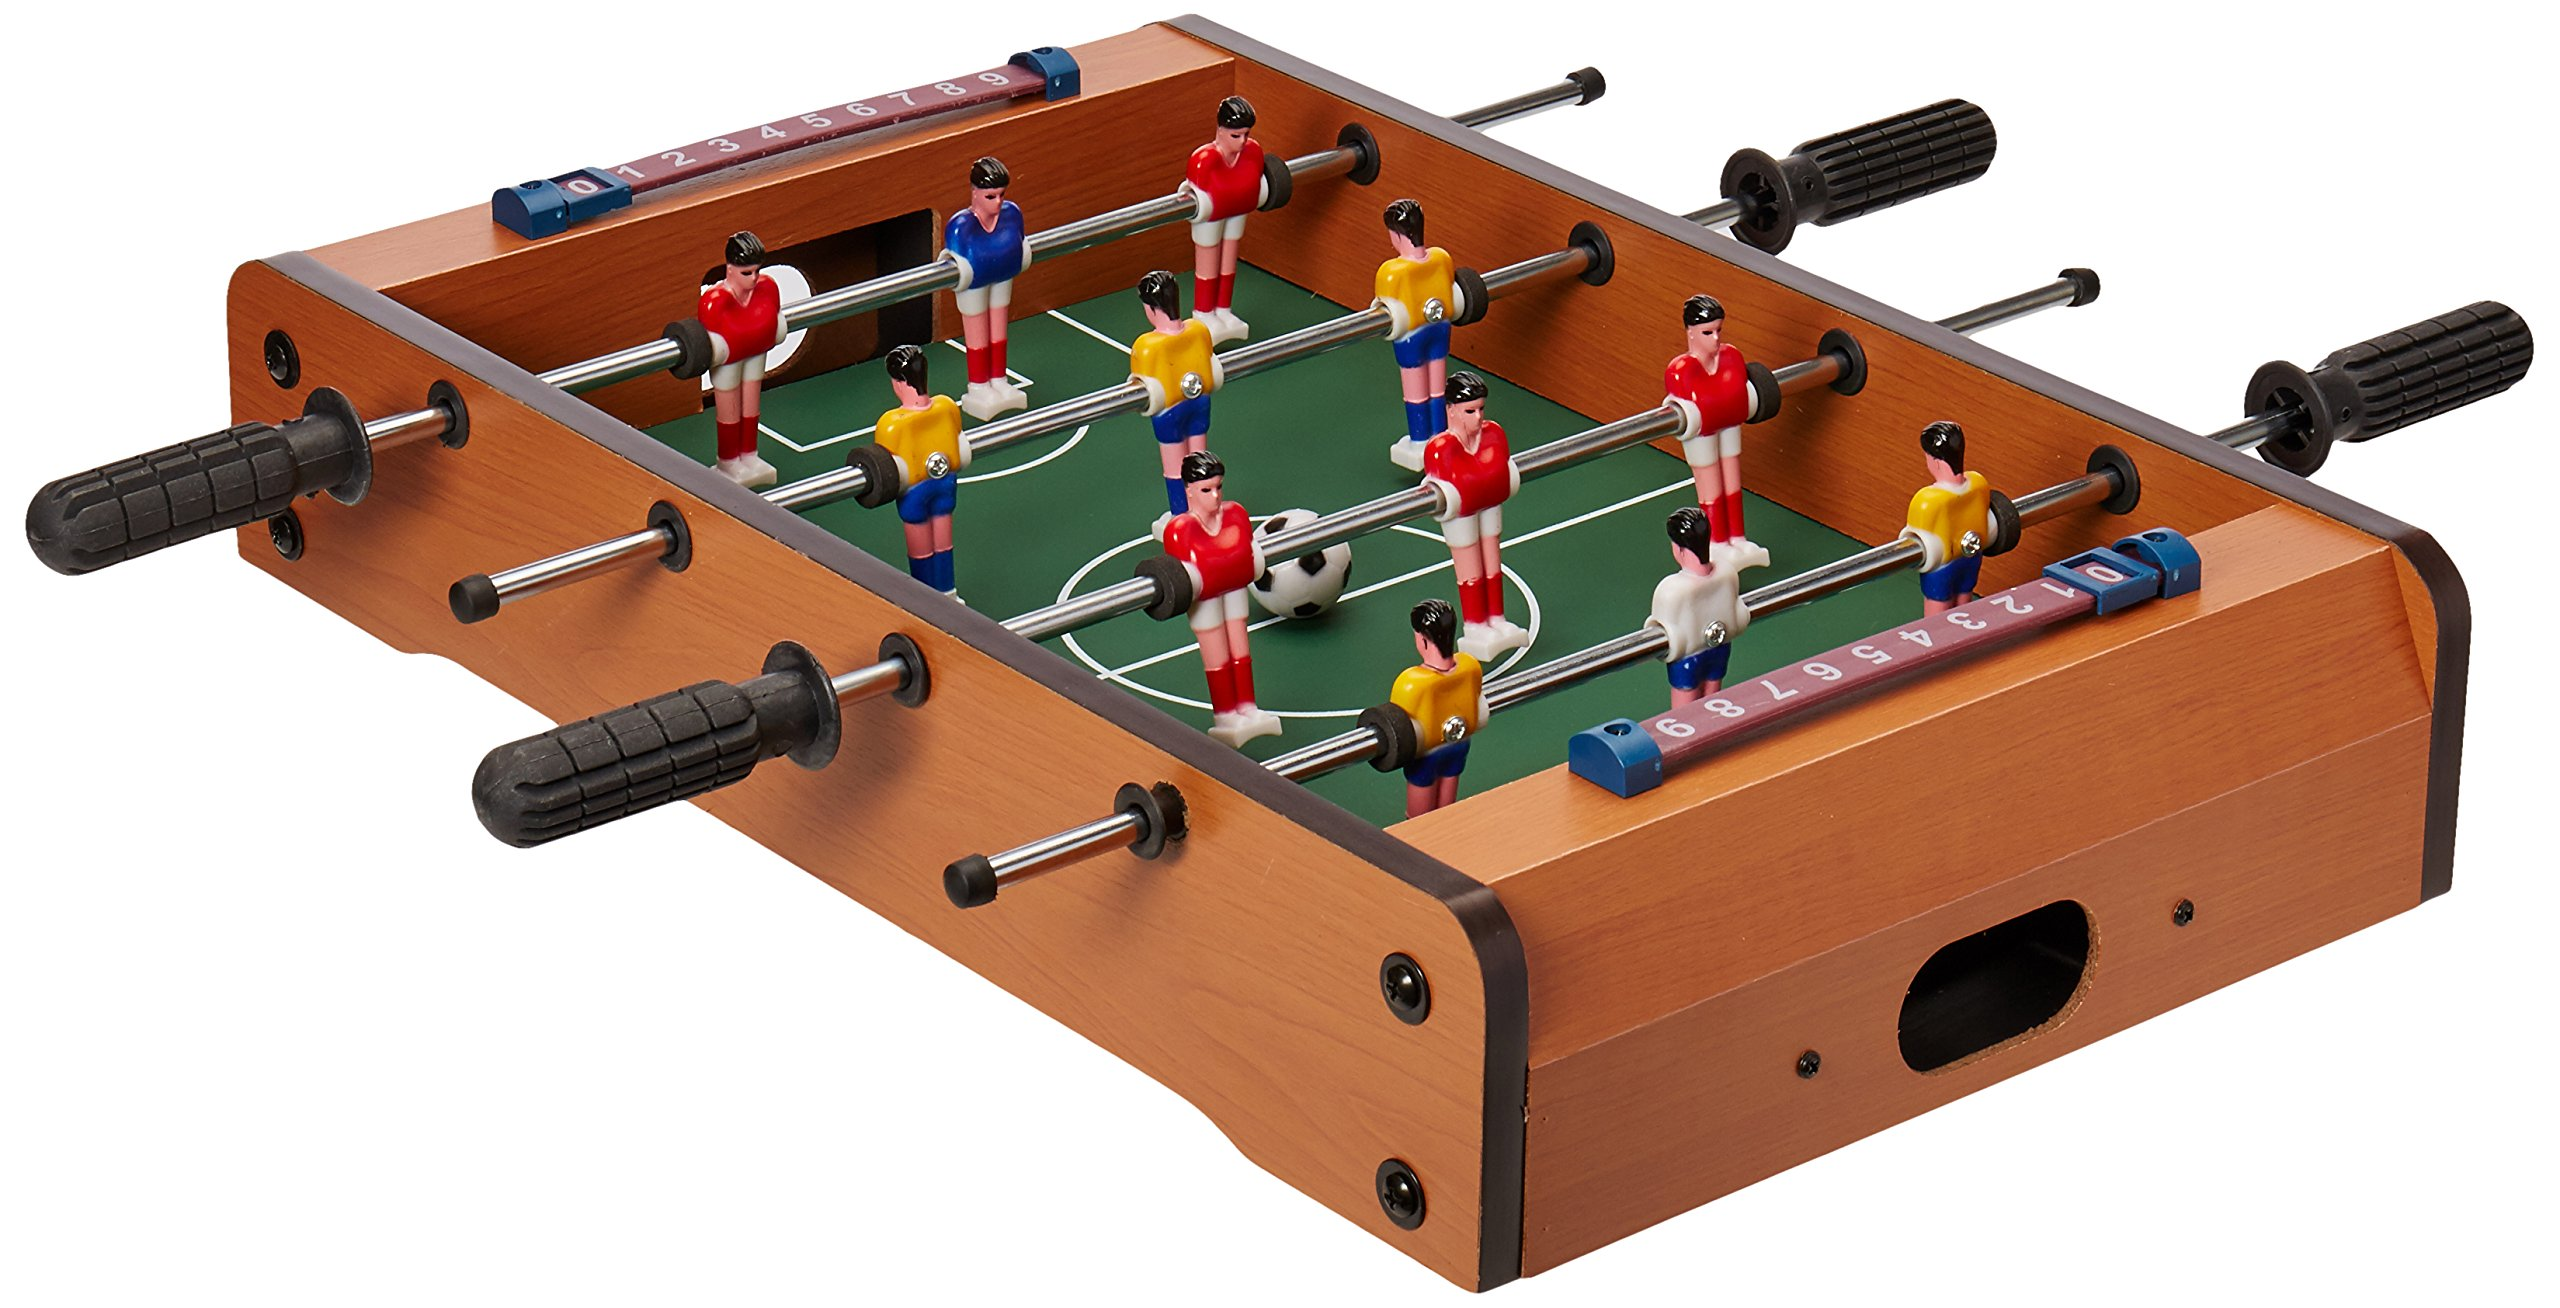 Ideal Premier Foosball Tabletop Game by Ideal